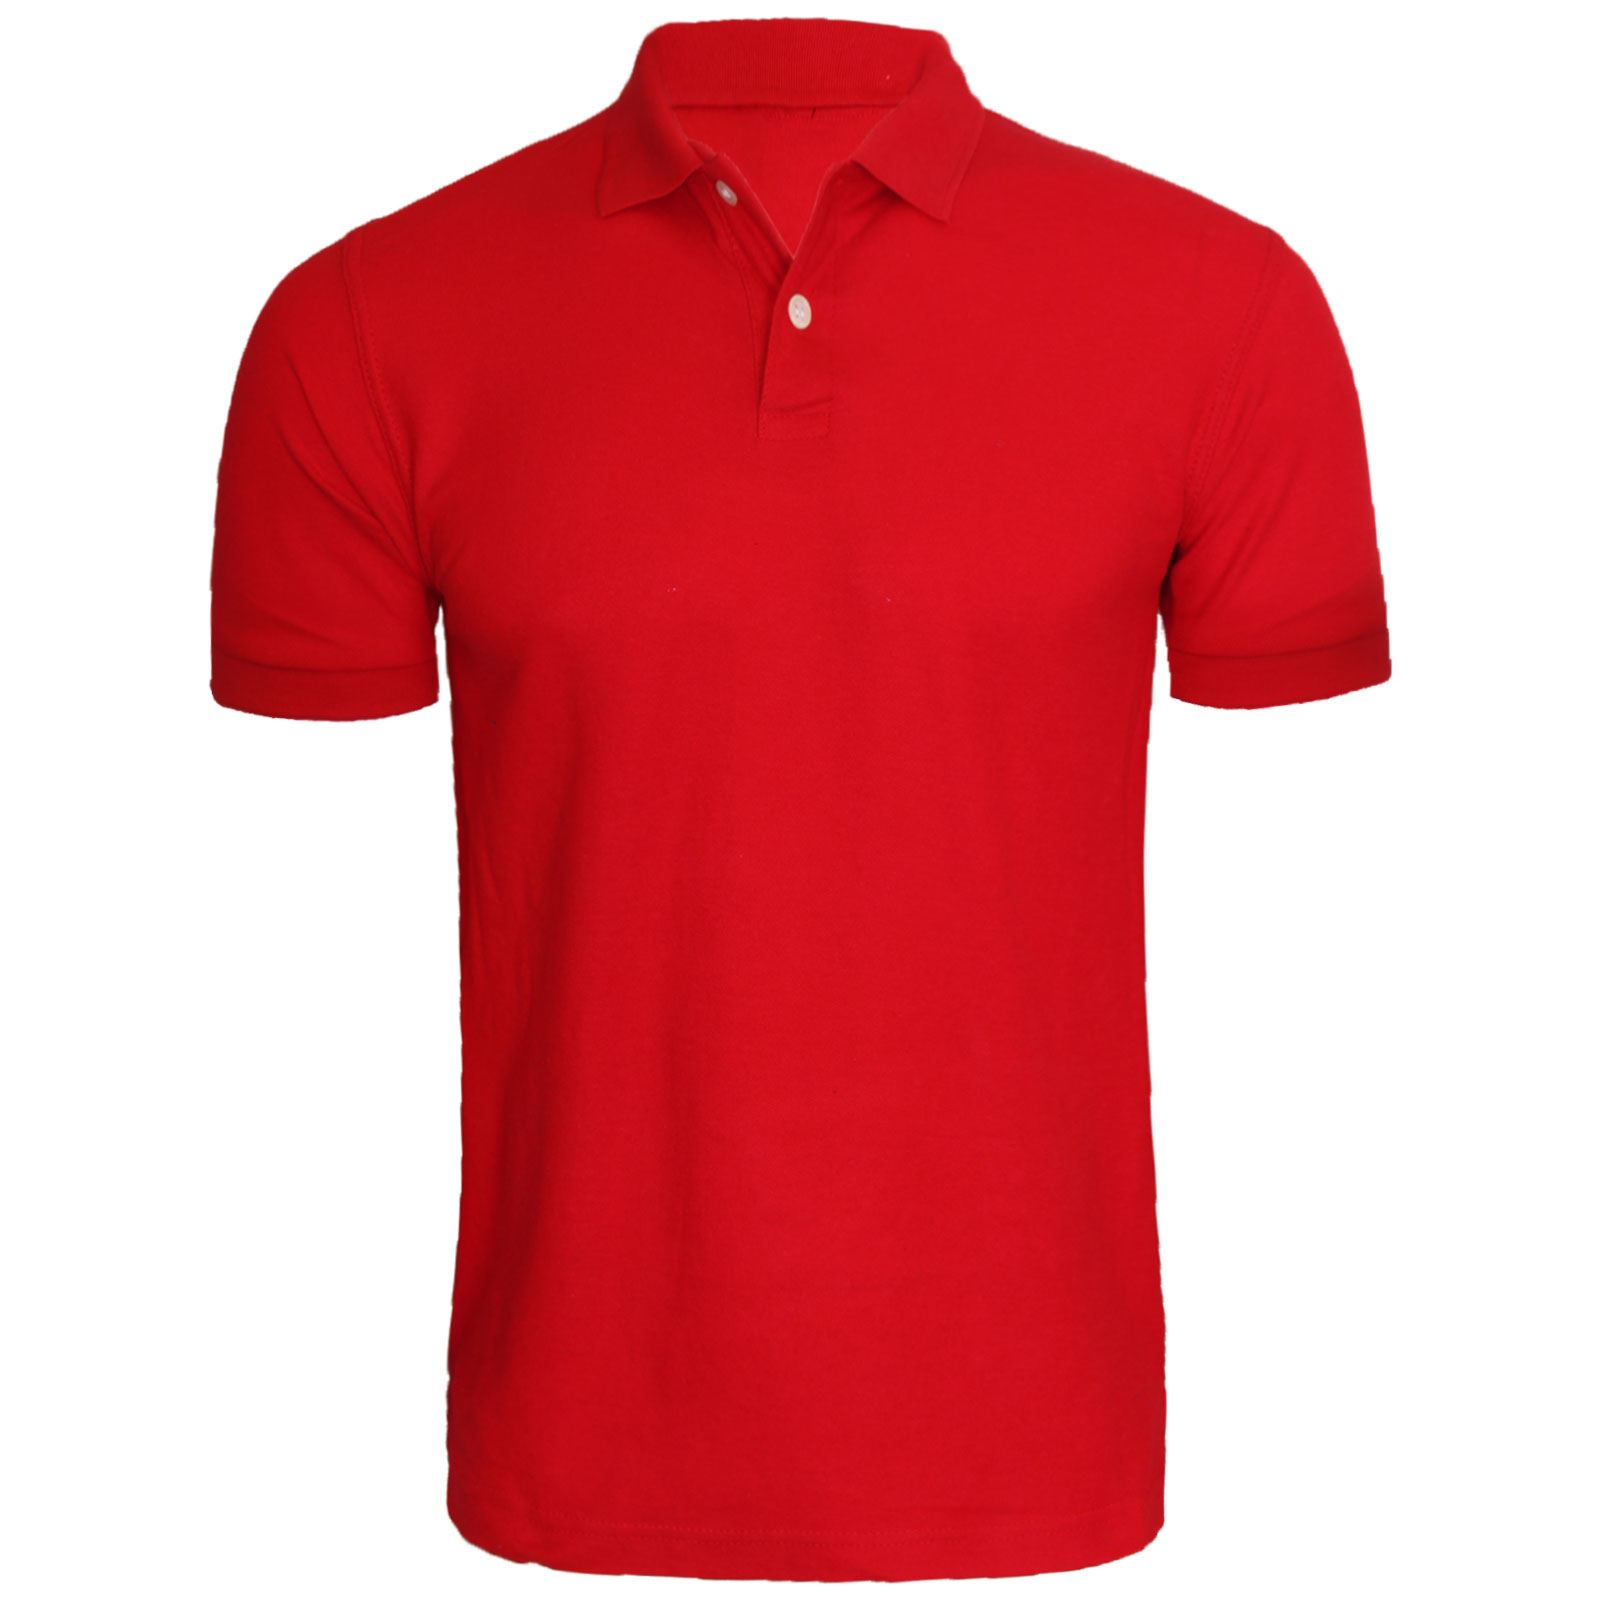 mens striped polo shirt short sleeve top golf t shirt